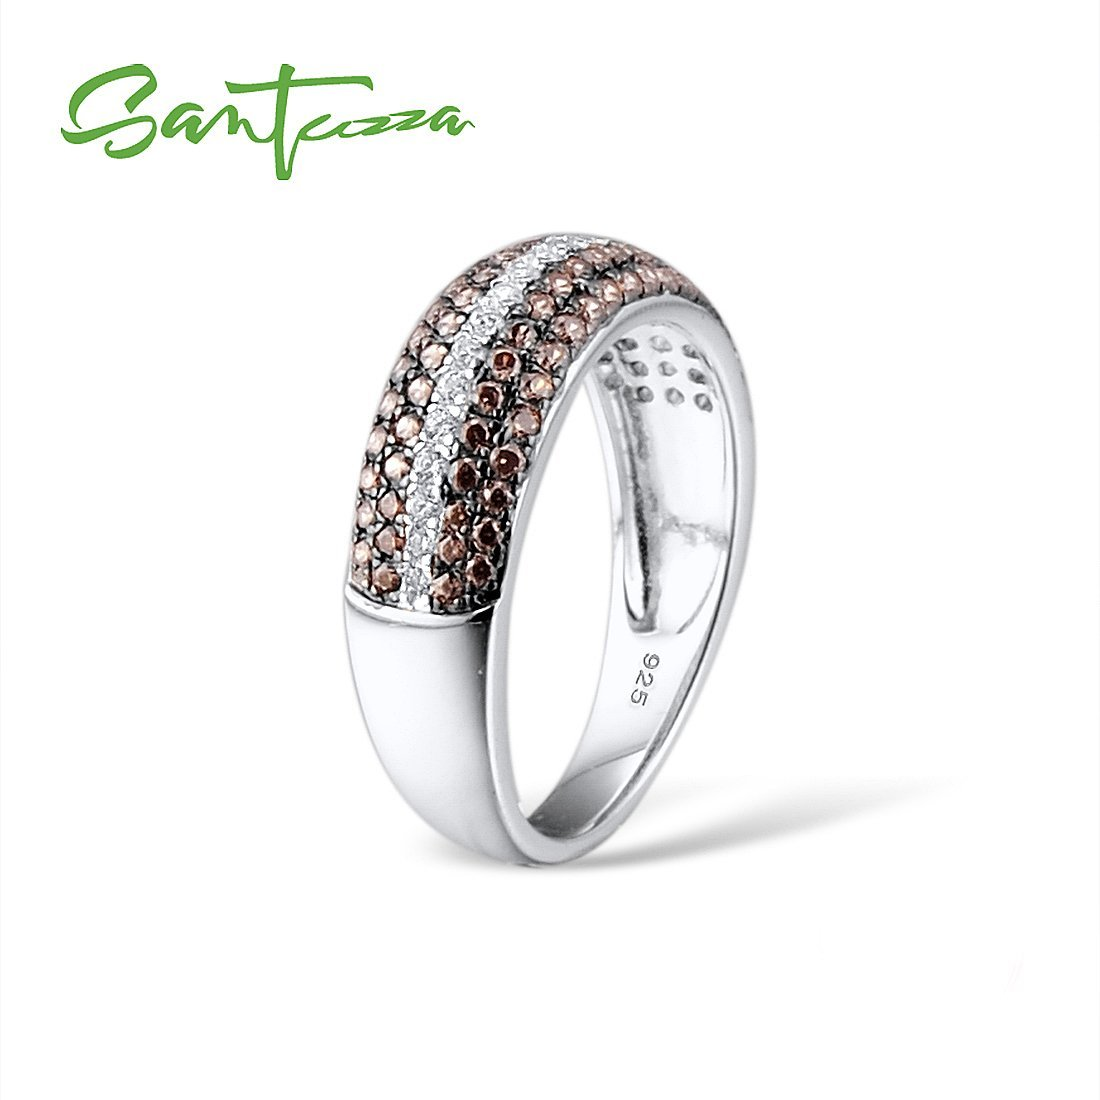 Santuzza 925 Sterling Silver Ring For Women Chocolate Cubic Zirconia Round Ring Party Fine Jewelry (6) by Santuzza (Image #4)